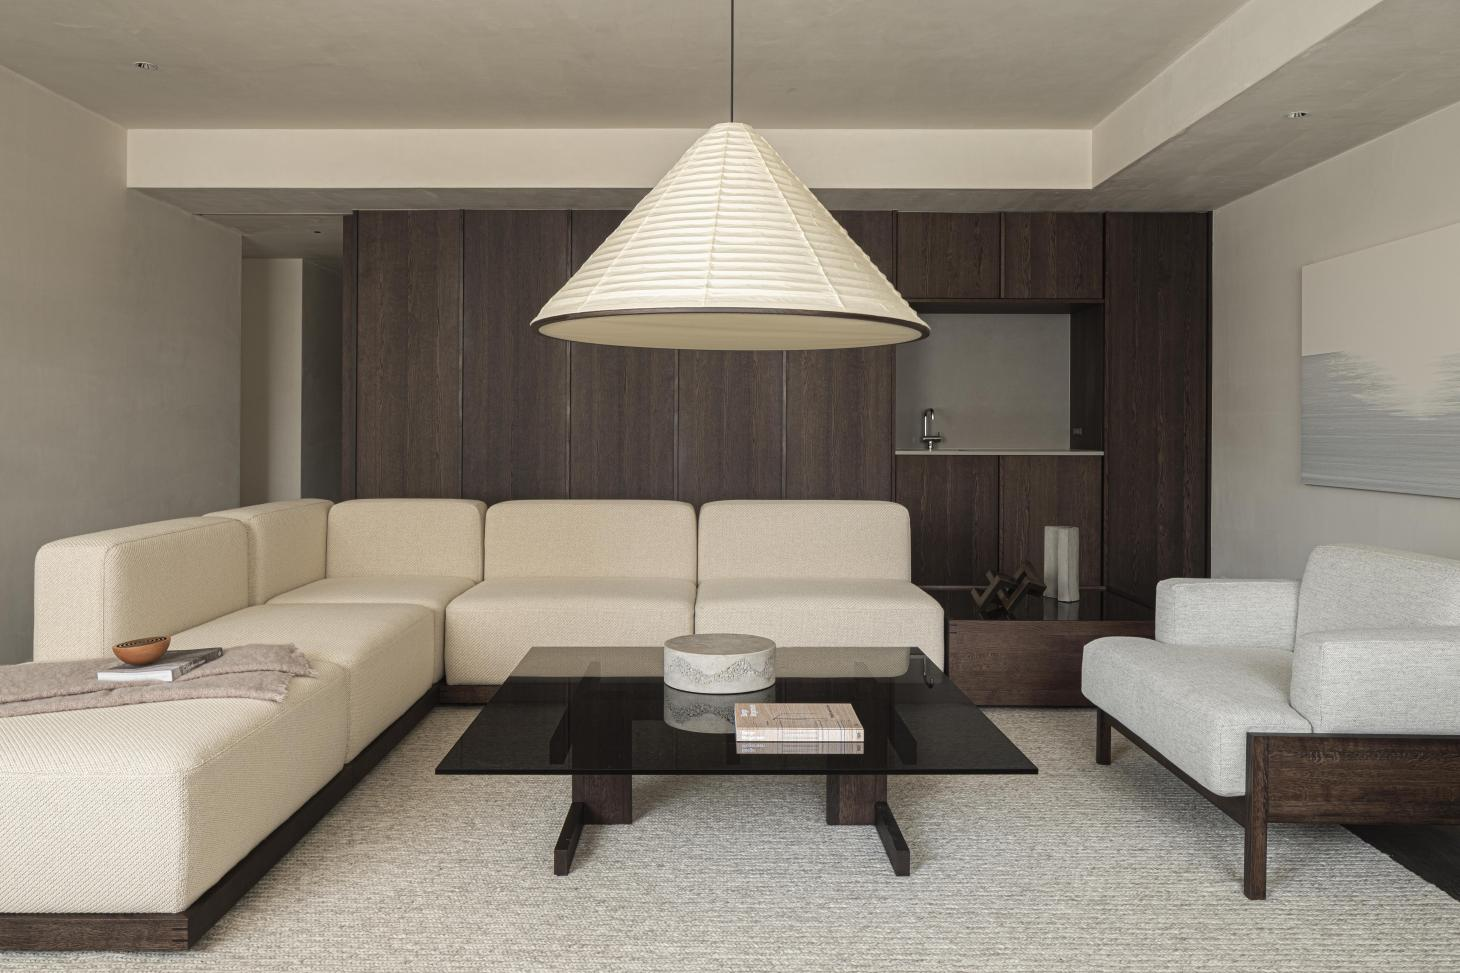 A living room in the Karimoku Case Study house furnished with cream corner sofa and pendant lamp